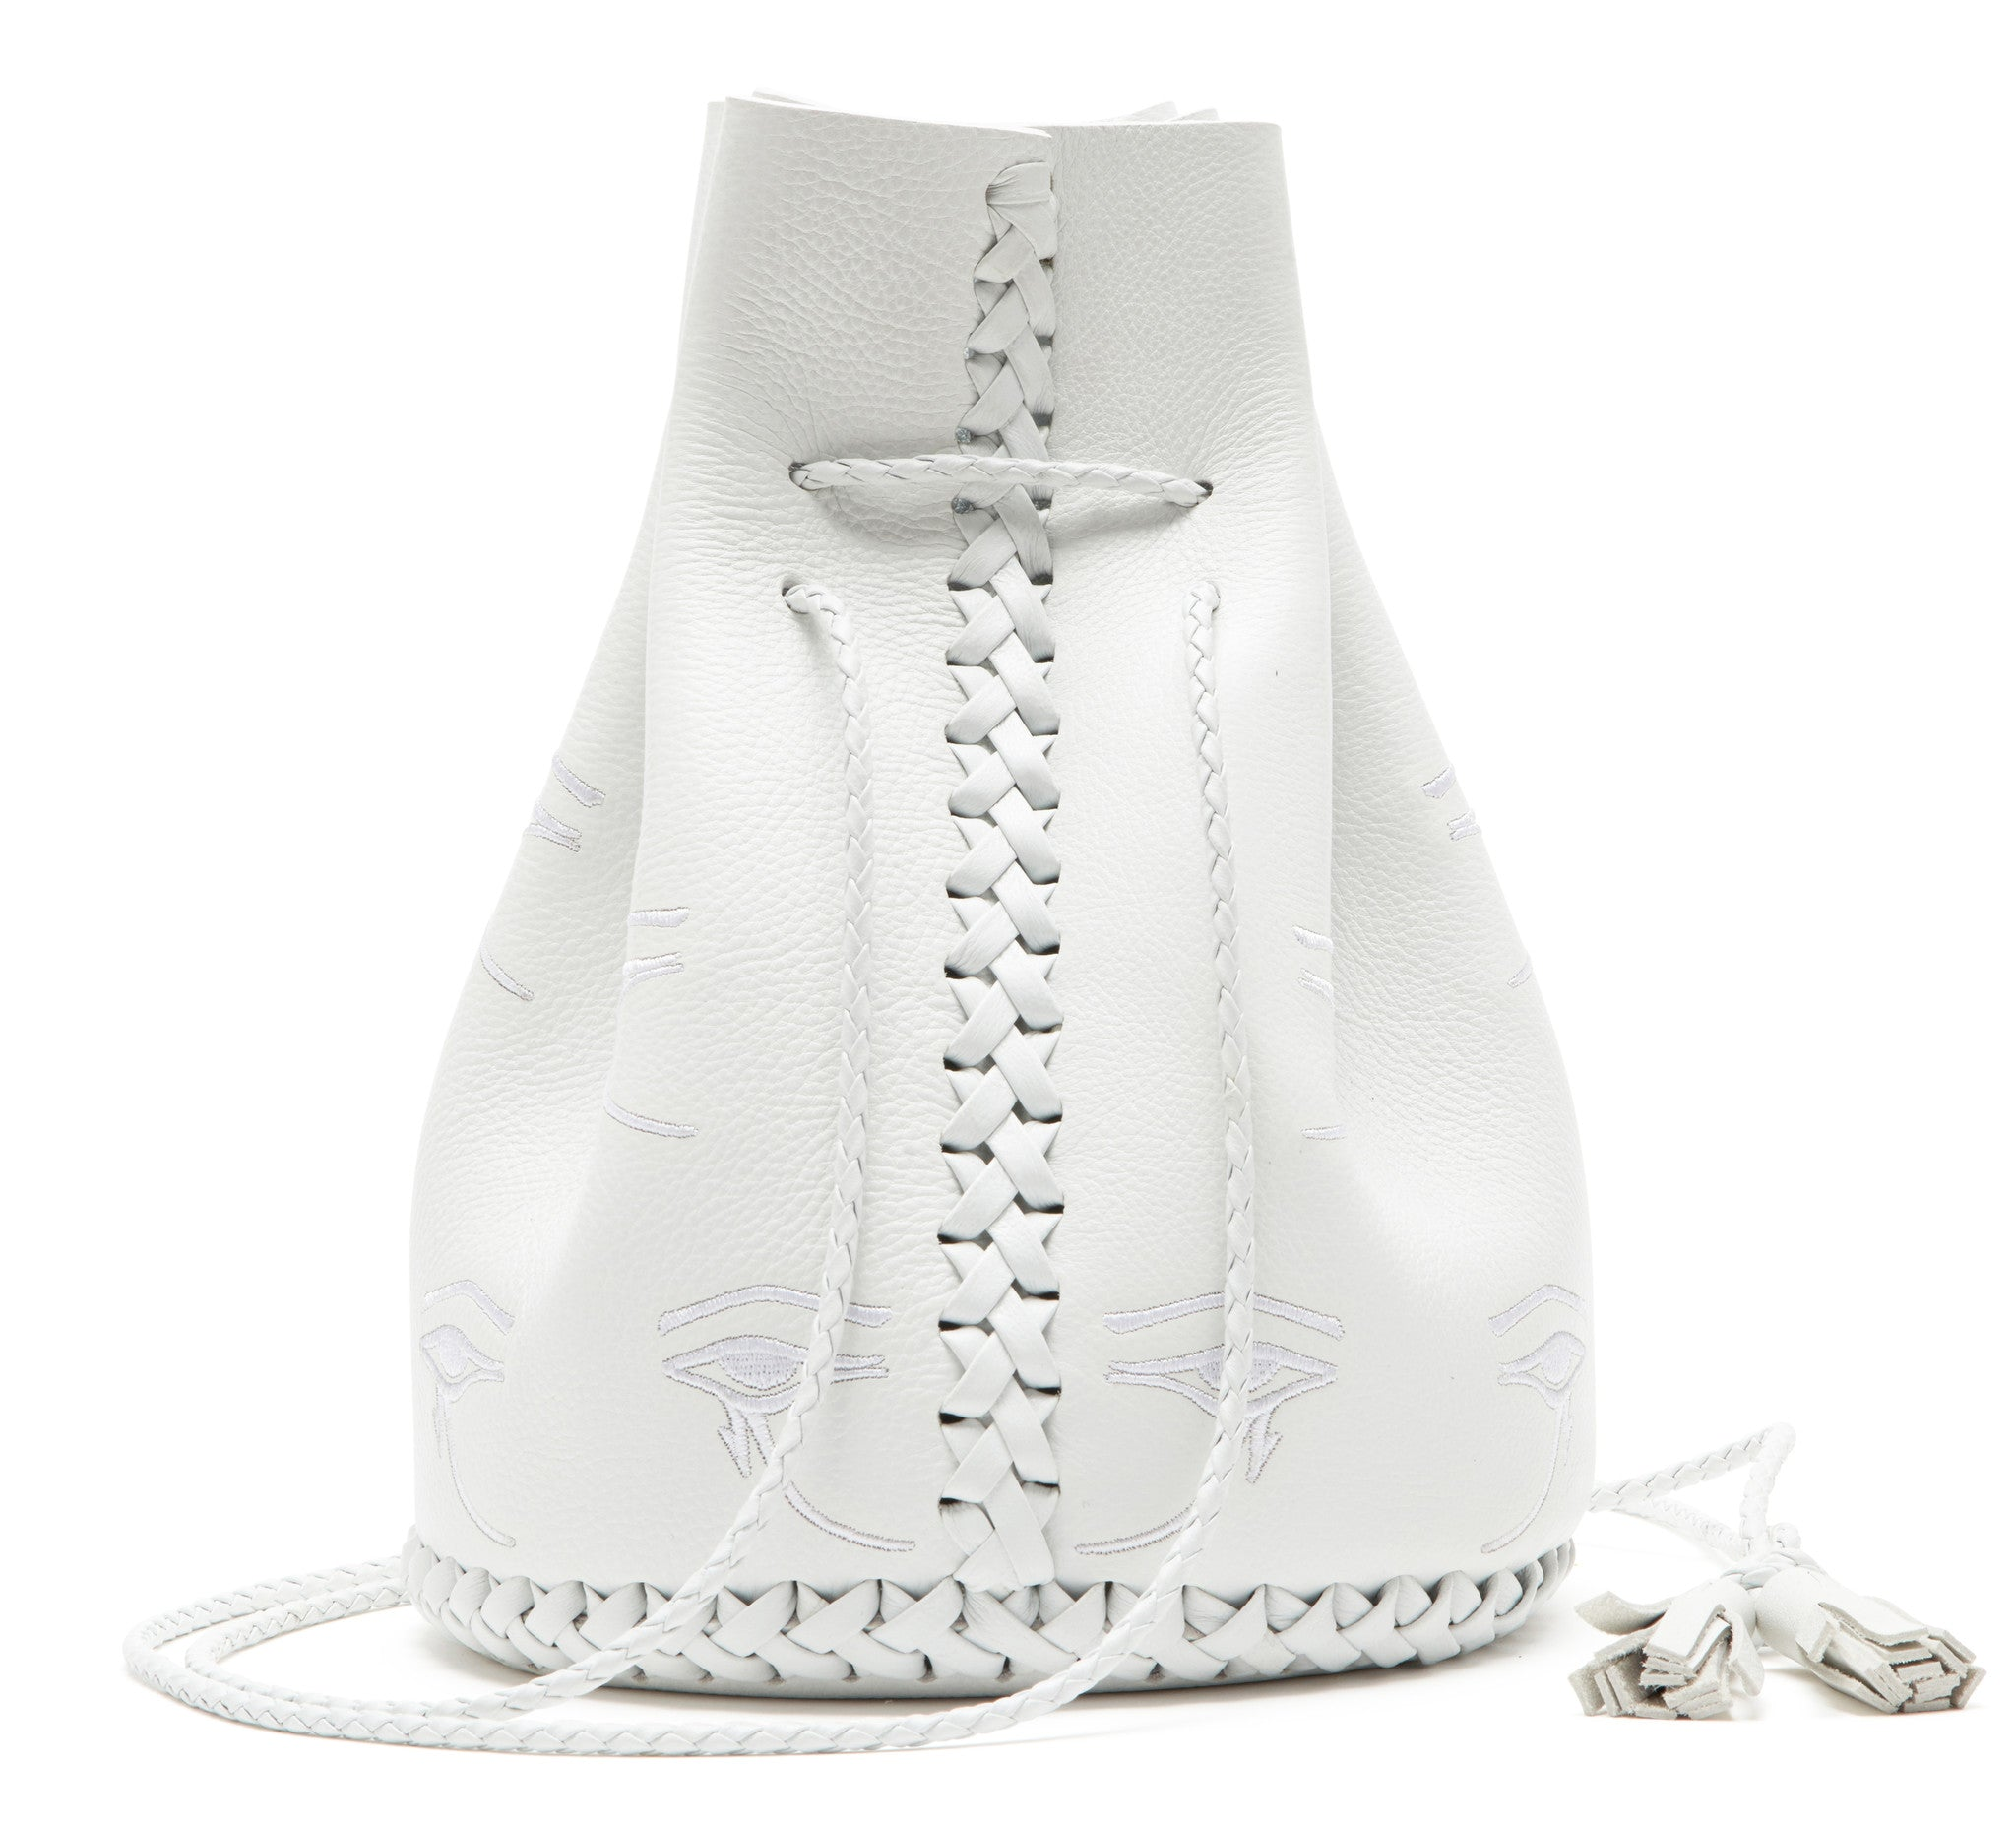 Silver White Embroidered Egyptian Eye of Horus Leather Bullet Bucket Bag Wendy Nichol Handbag Purse Designer Handmade in NYC New York City Bucket Bag Barneys Barney's Madonna Desperately Seeking Susan Evil Eye Eyeballs Drawstring Bucket Pouch Purse Handbag Leather Large Fringe Tassel